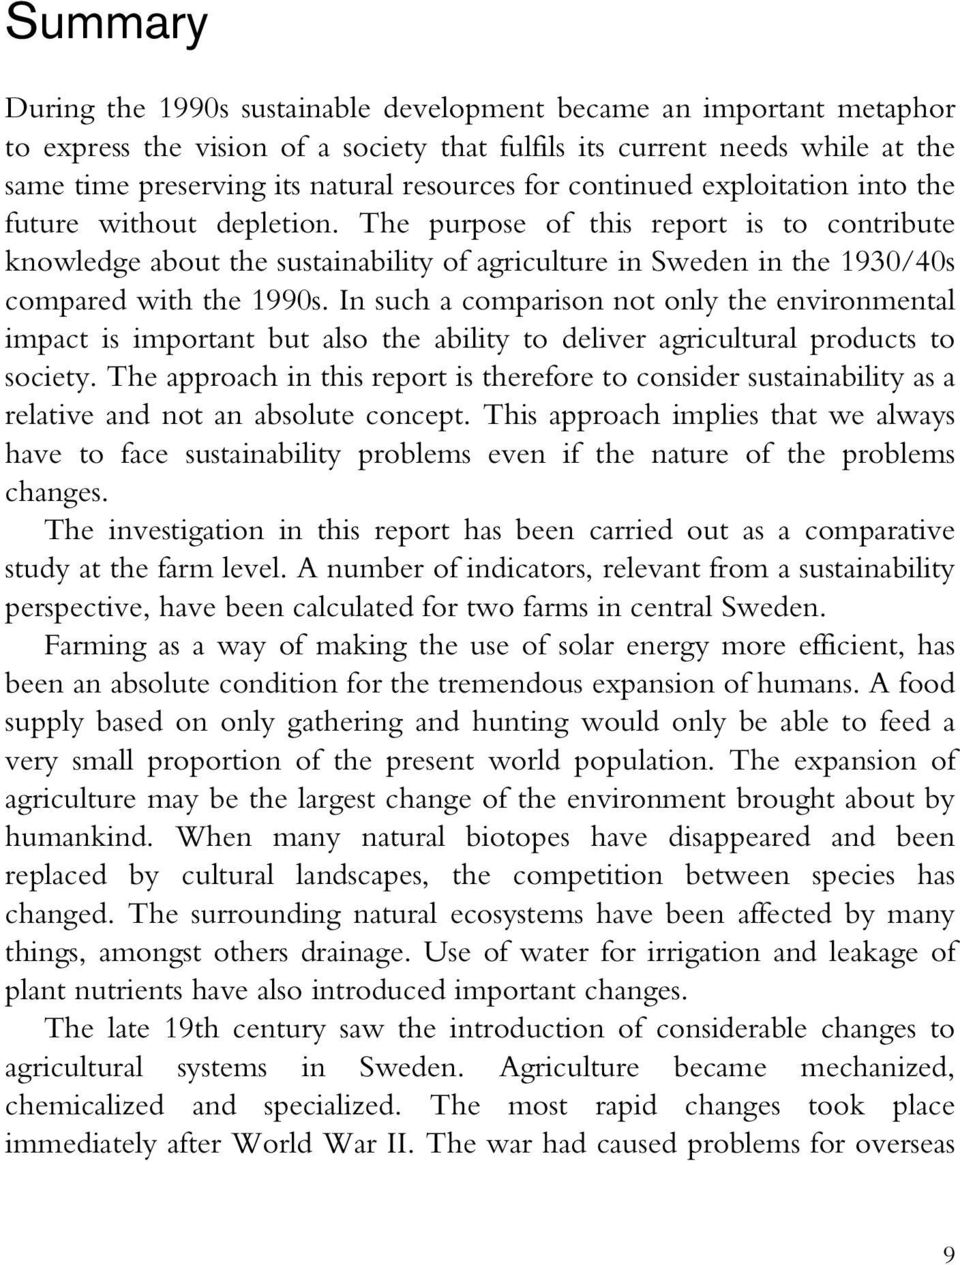 The purpose of this report is to contribute knowledge about the sustainability of agriculture in Sweden in the 1930/40s compared with the 1990s.